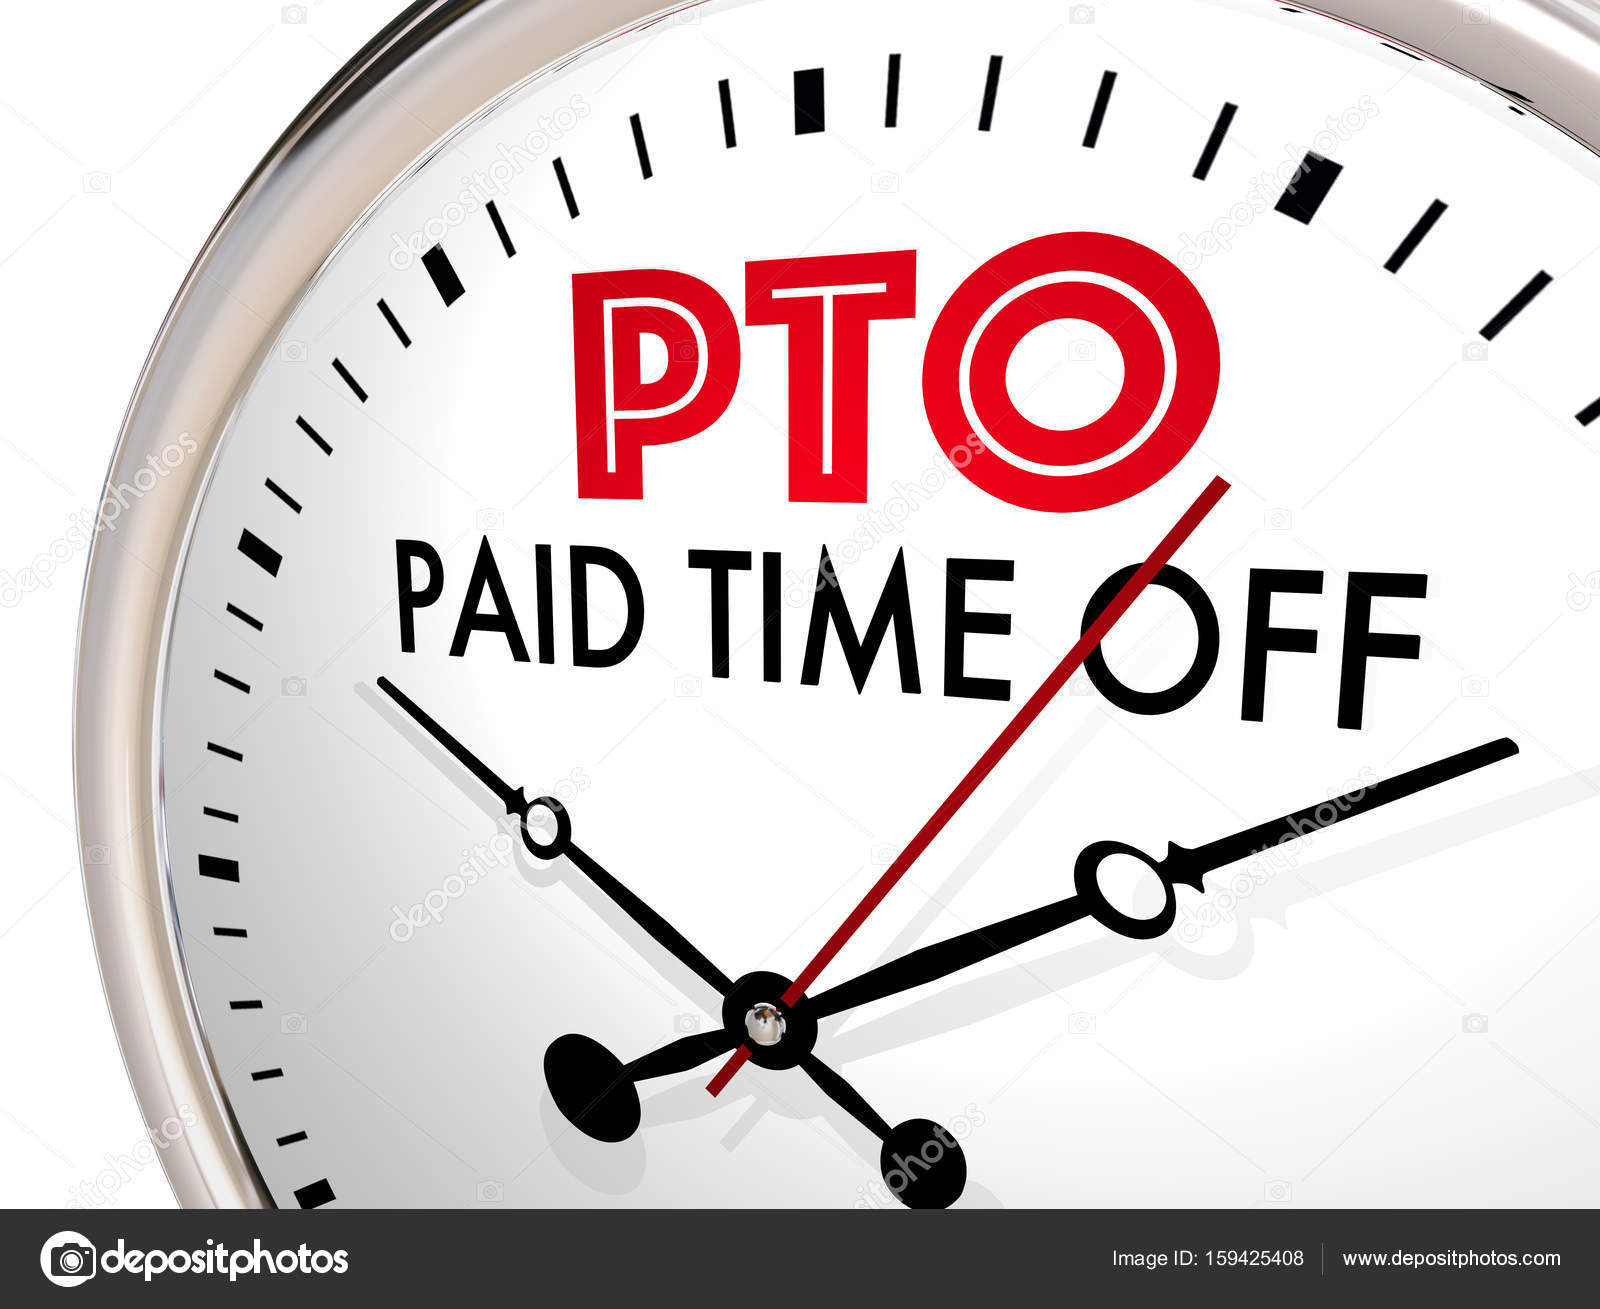 the value of paid time off essay Traditional leave systems separate time off into vacation, sick leave, personal leave, and other types of leave in contrast, paid time off (pto) banks typically combine all time off benefits into one cumulative bank of days which an employee can draw upon for any need.